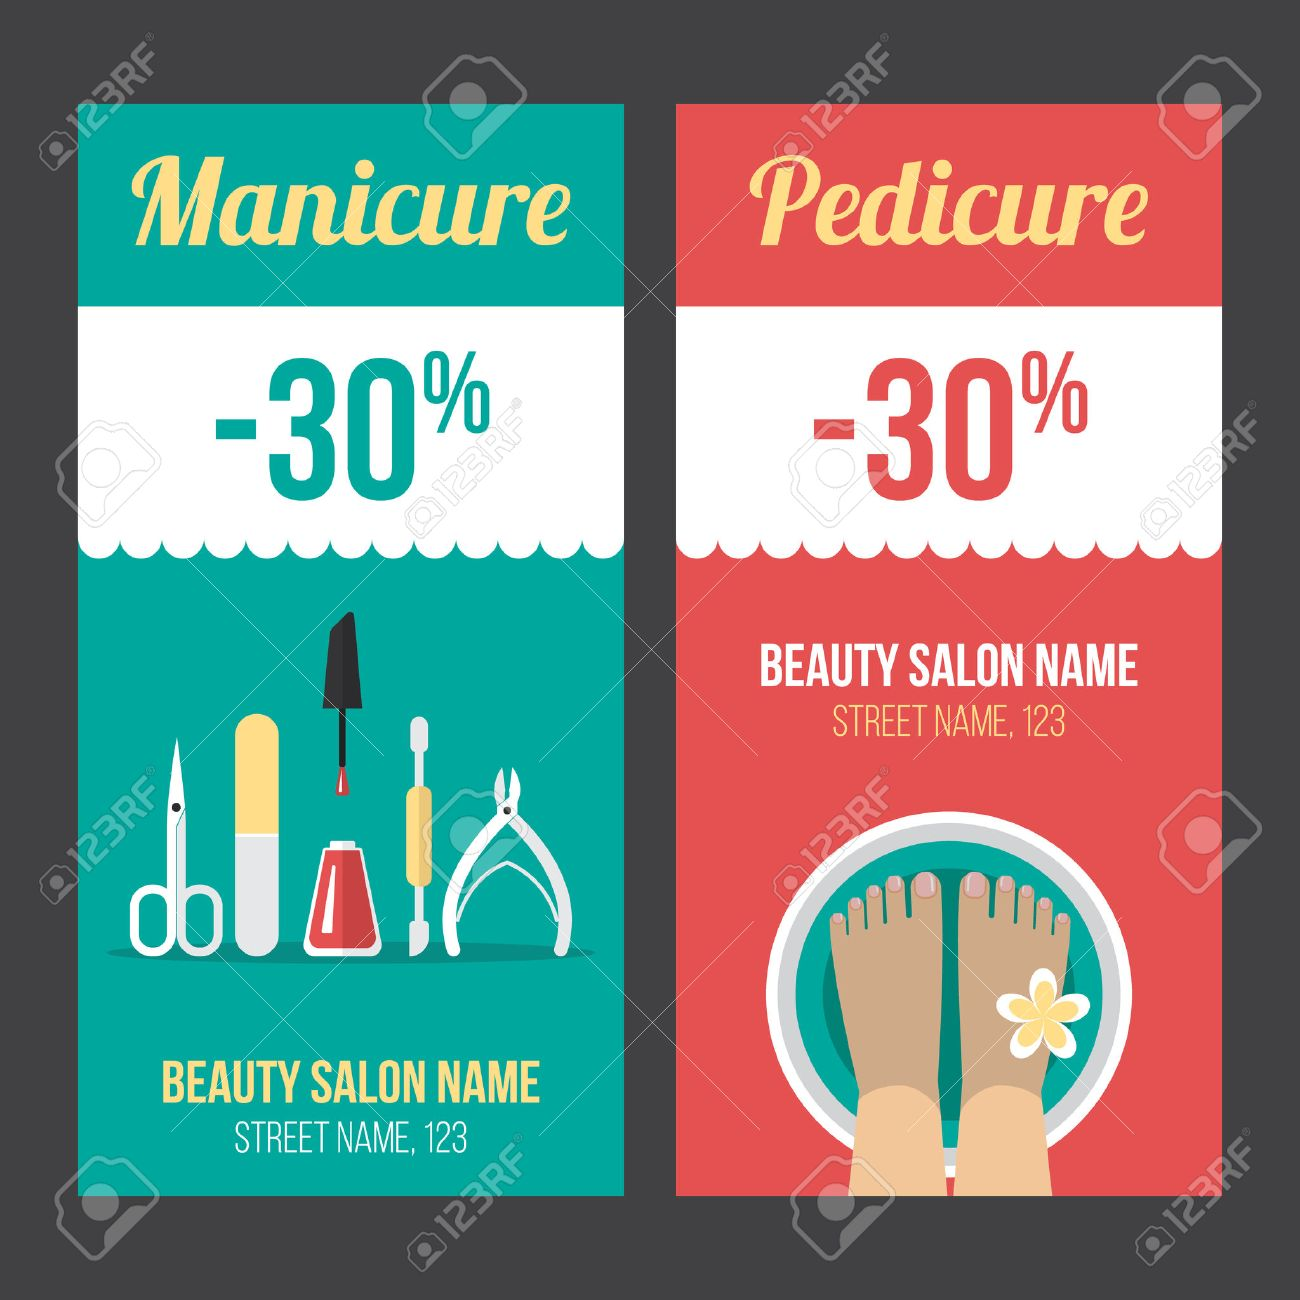 vector manicure and pedicure discount flyer voucher coupon vector manicure and pedicure discount flyer voucher coupon poster or banner templates